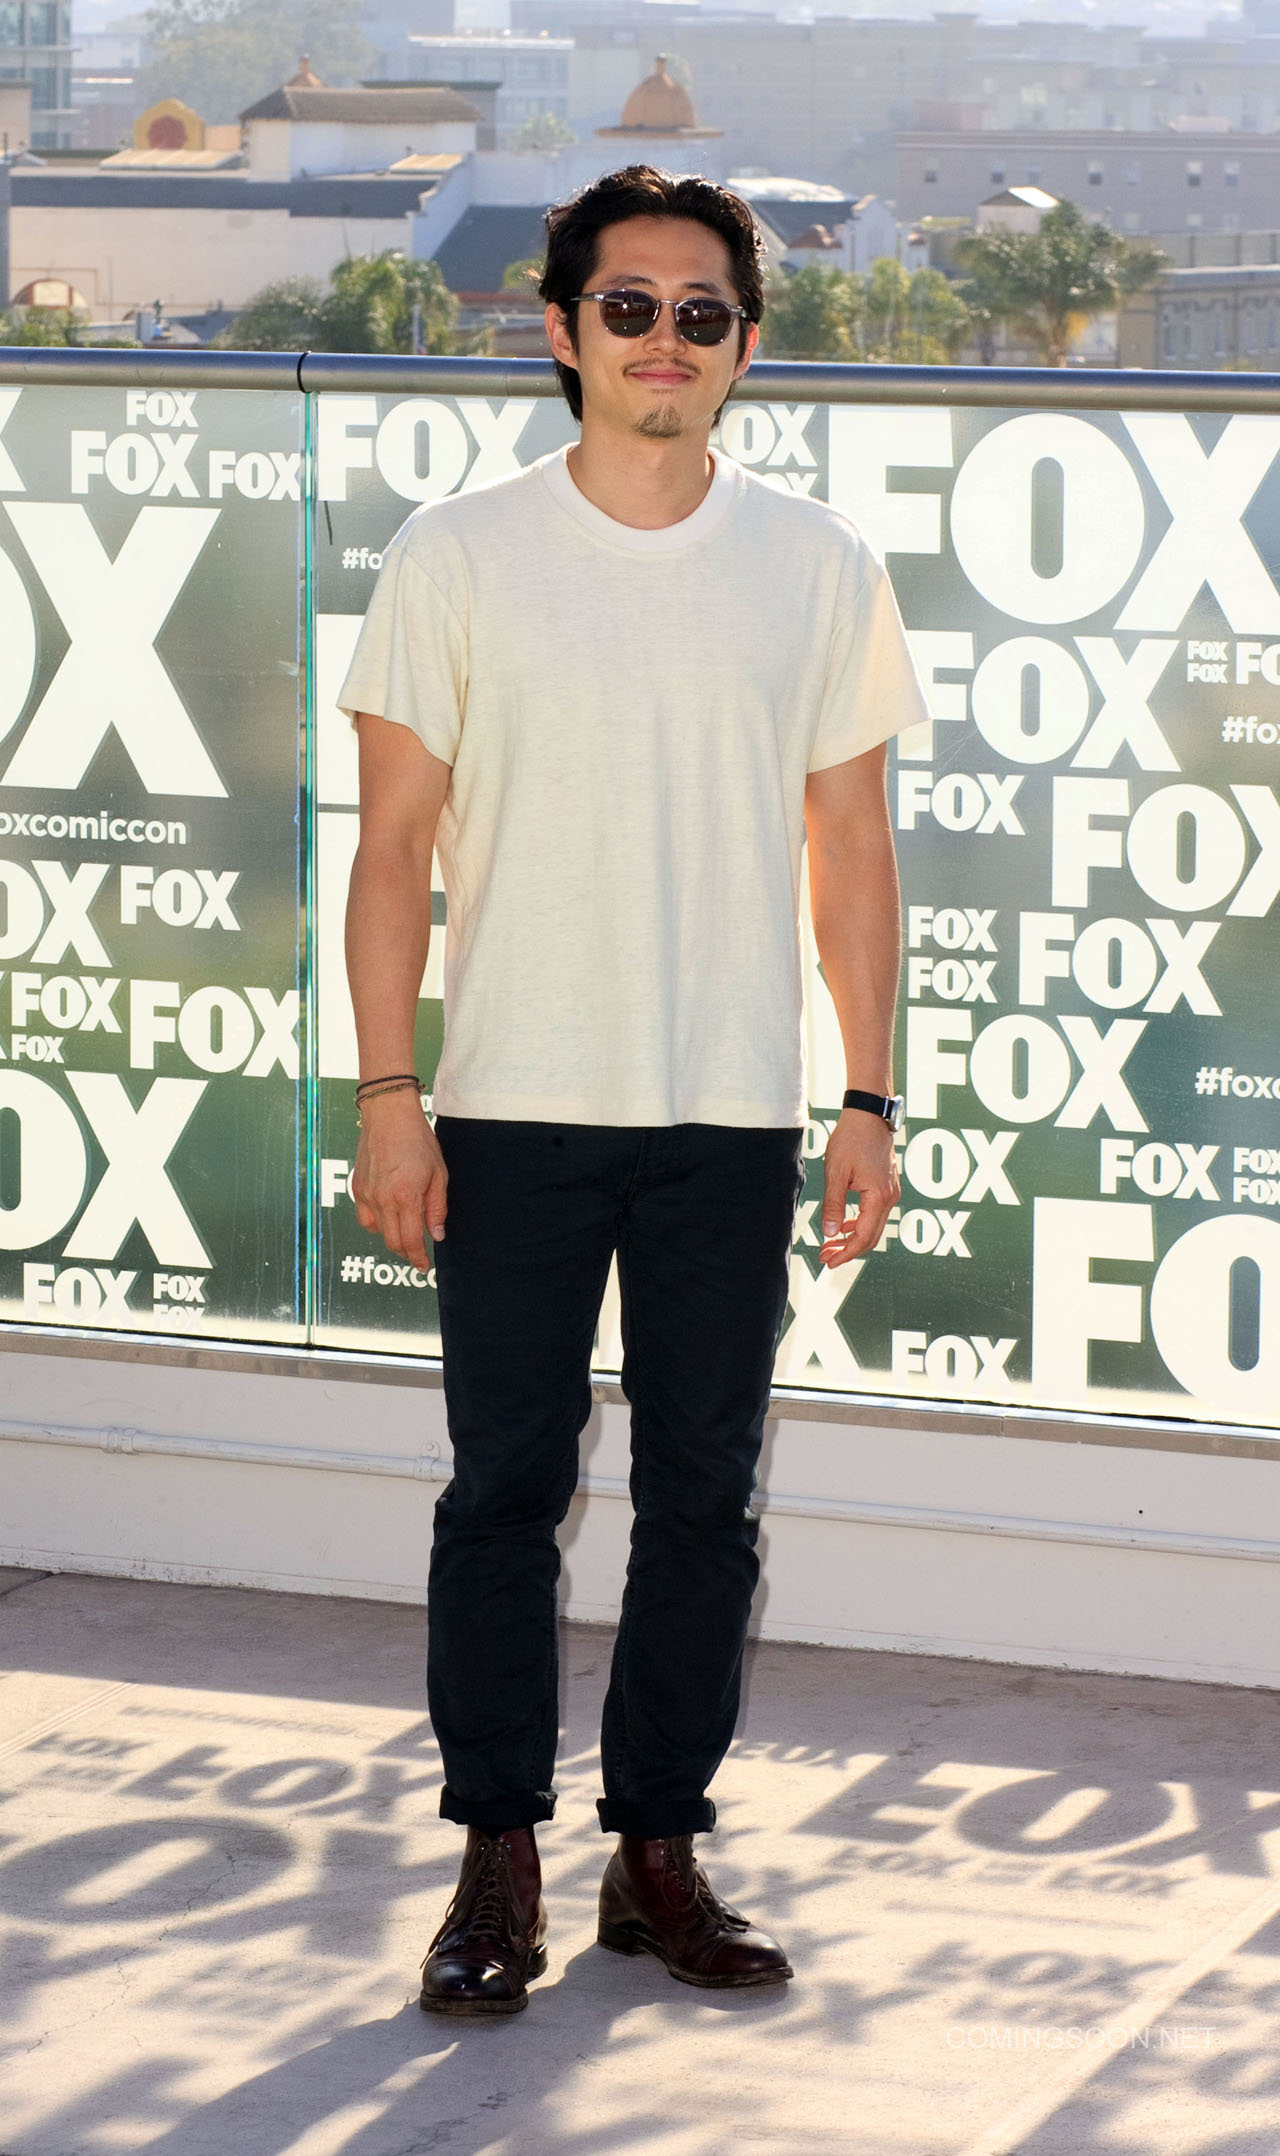 Fox Comic Con breakfast with the cast of Walking Dead and Outcast Featuring: Steven Yeun Where: San Diego, California, United States When: 22 Jul 2016 Credit: Tony Forte/WENN